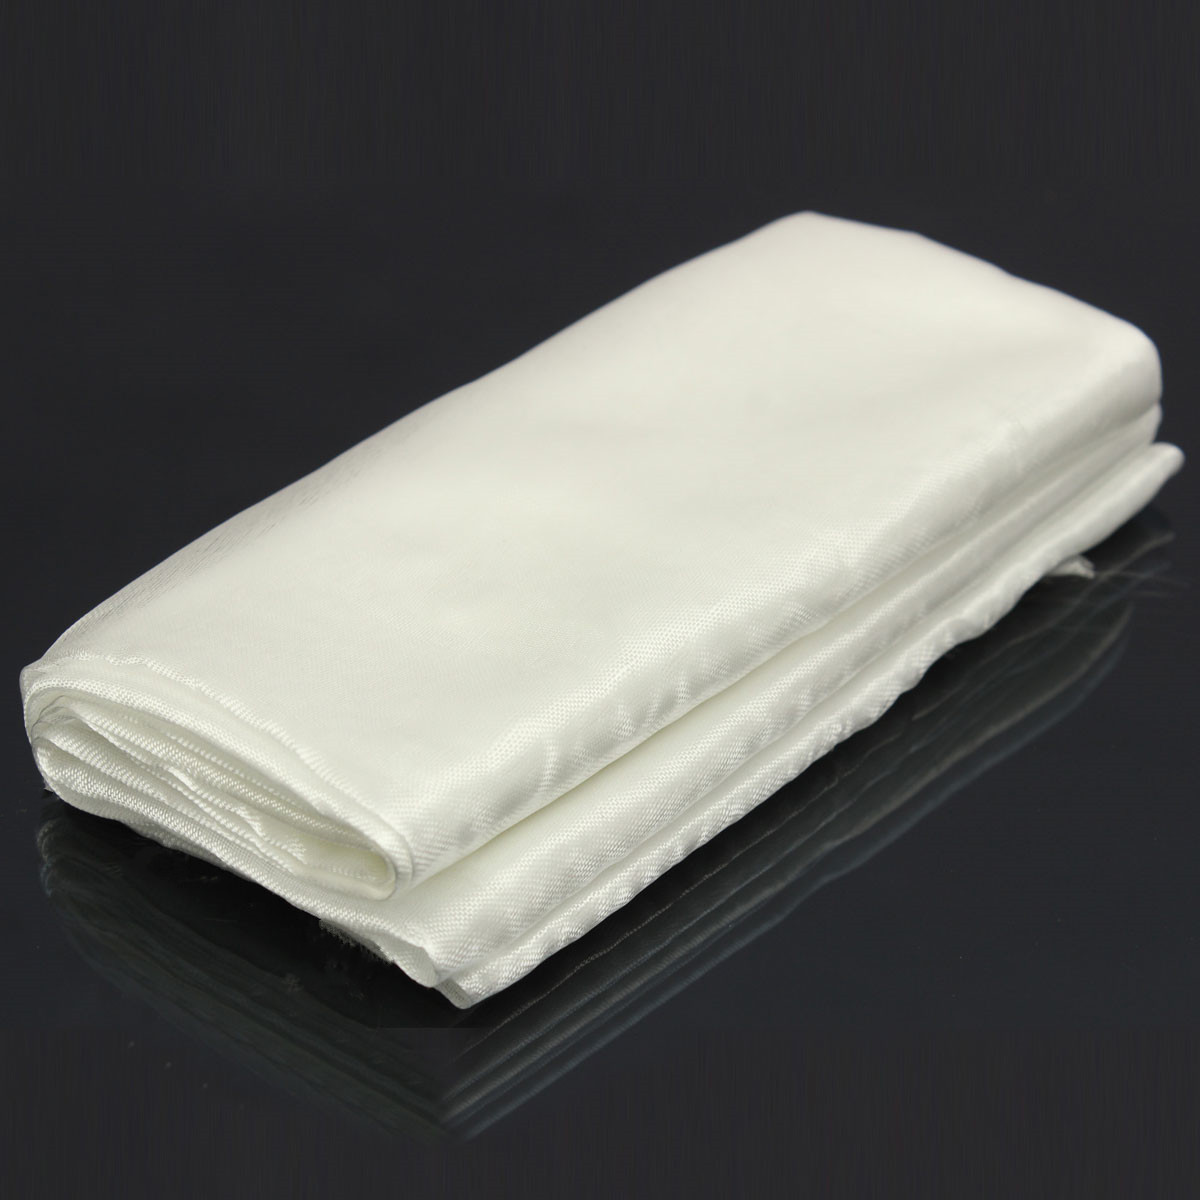 1 x 1.27m Thickness 0.03mm Ultra Thin Fiber Glass Fabric Reinforcements Fiberglass Fibreglass Cloth High temperature resistance kimio brand bracelet watches women reloj mujer luxury rose gold business casual ladies digital dial clock quartz wristwatch hot